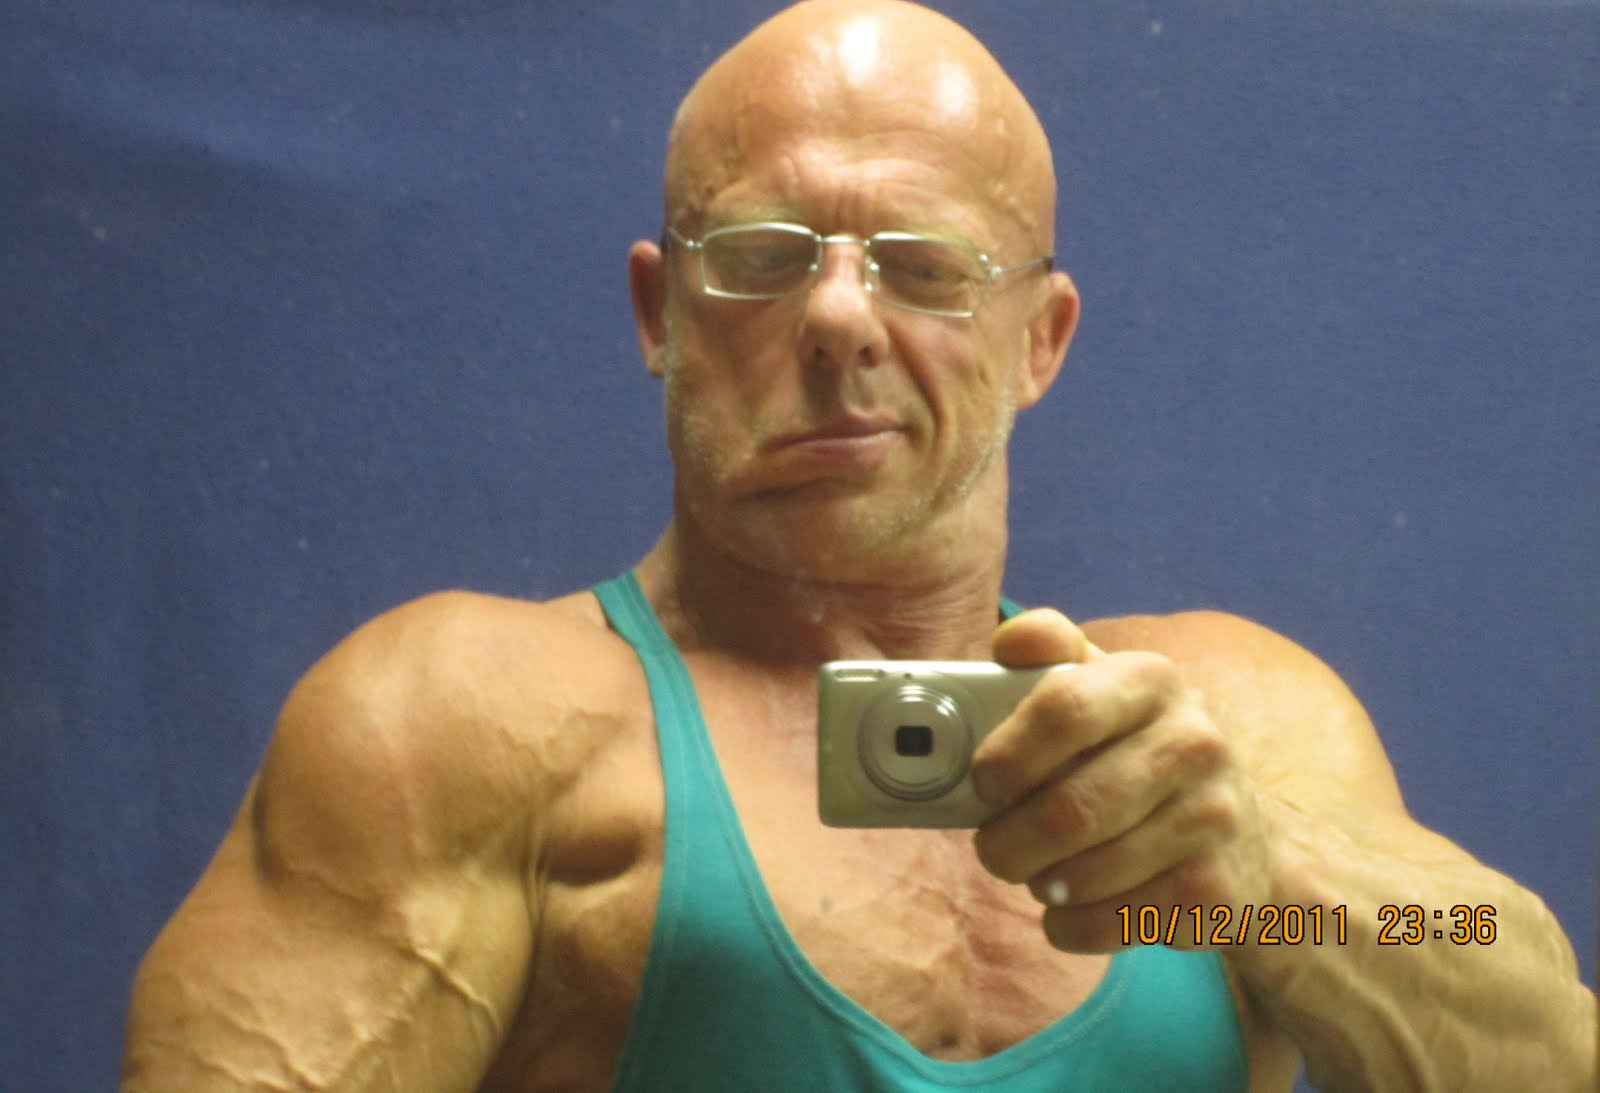 andreas cahling use steroids